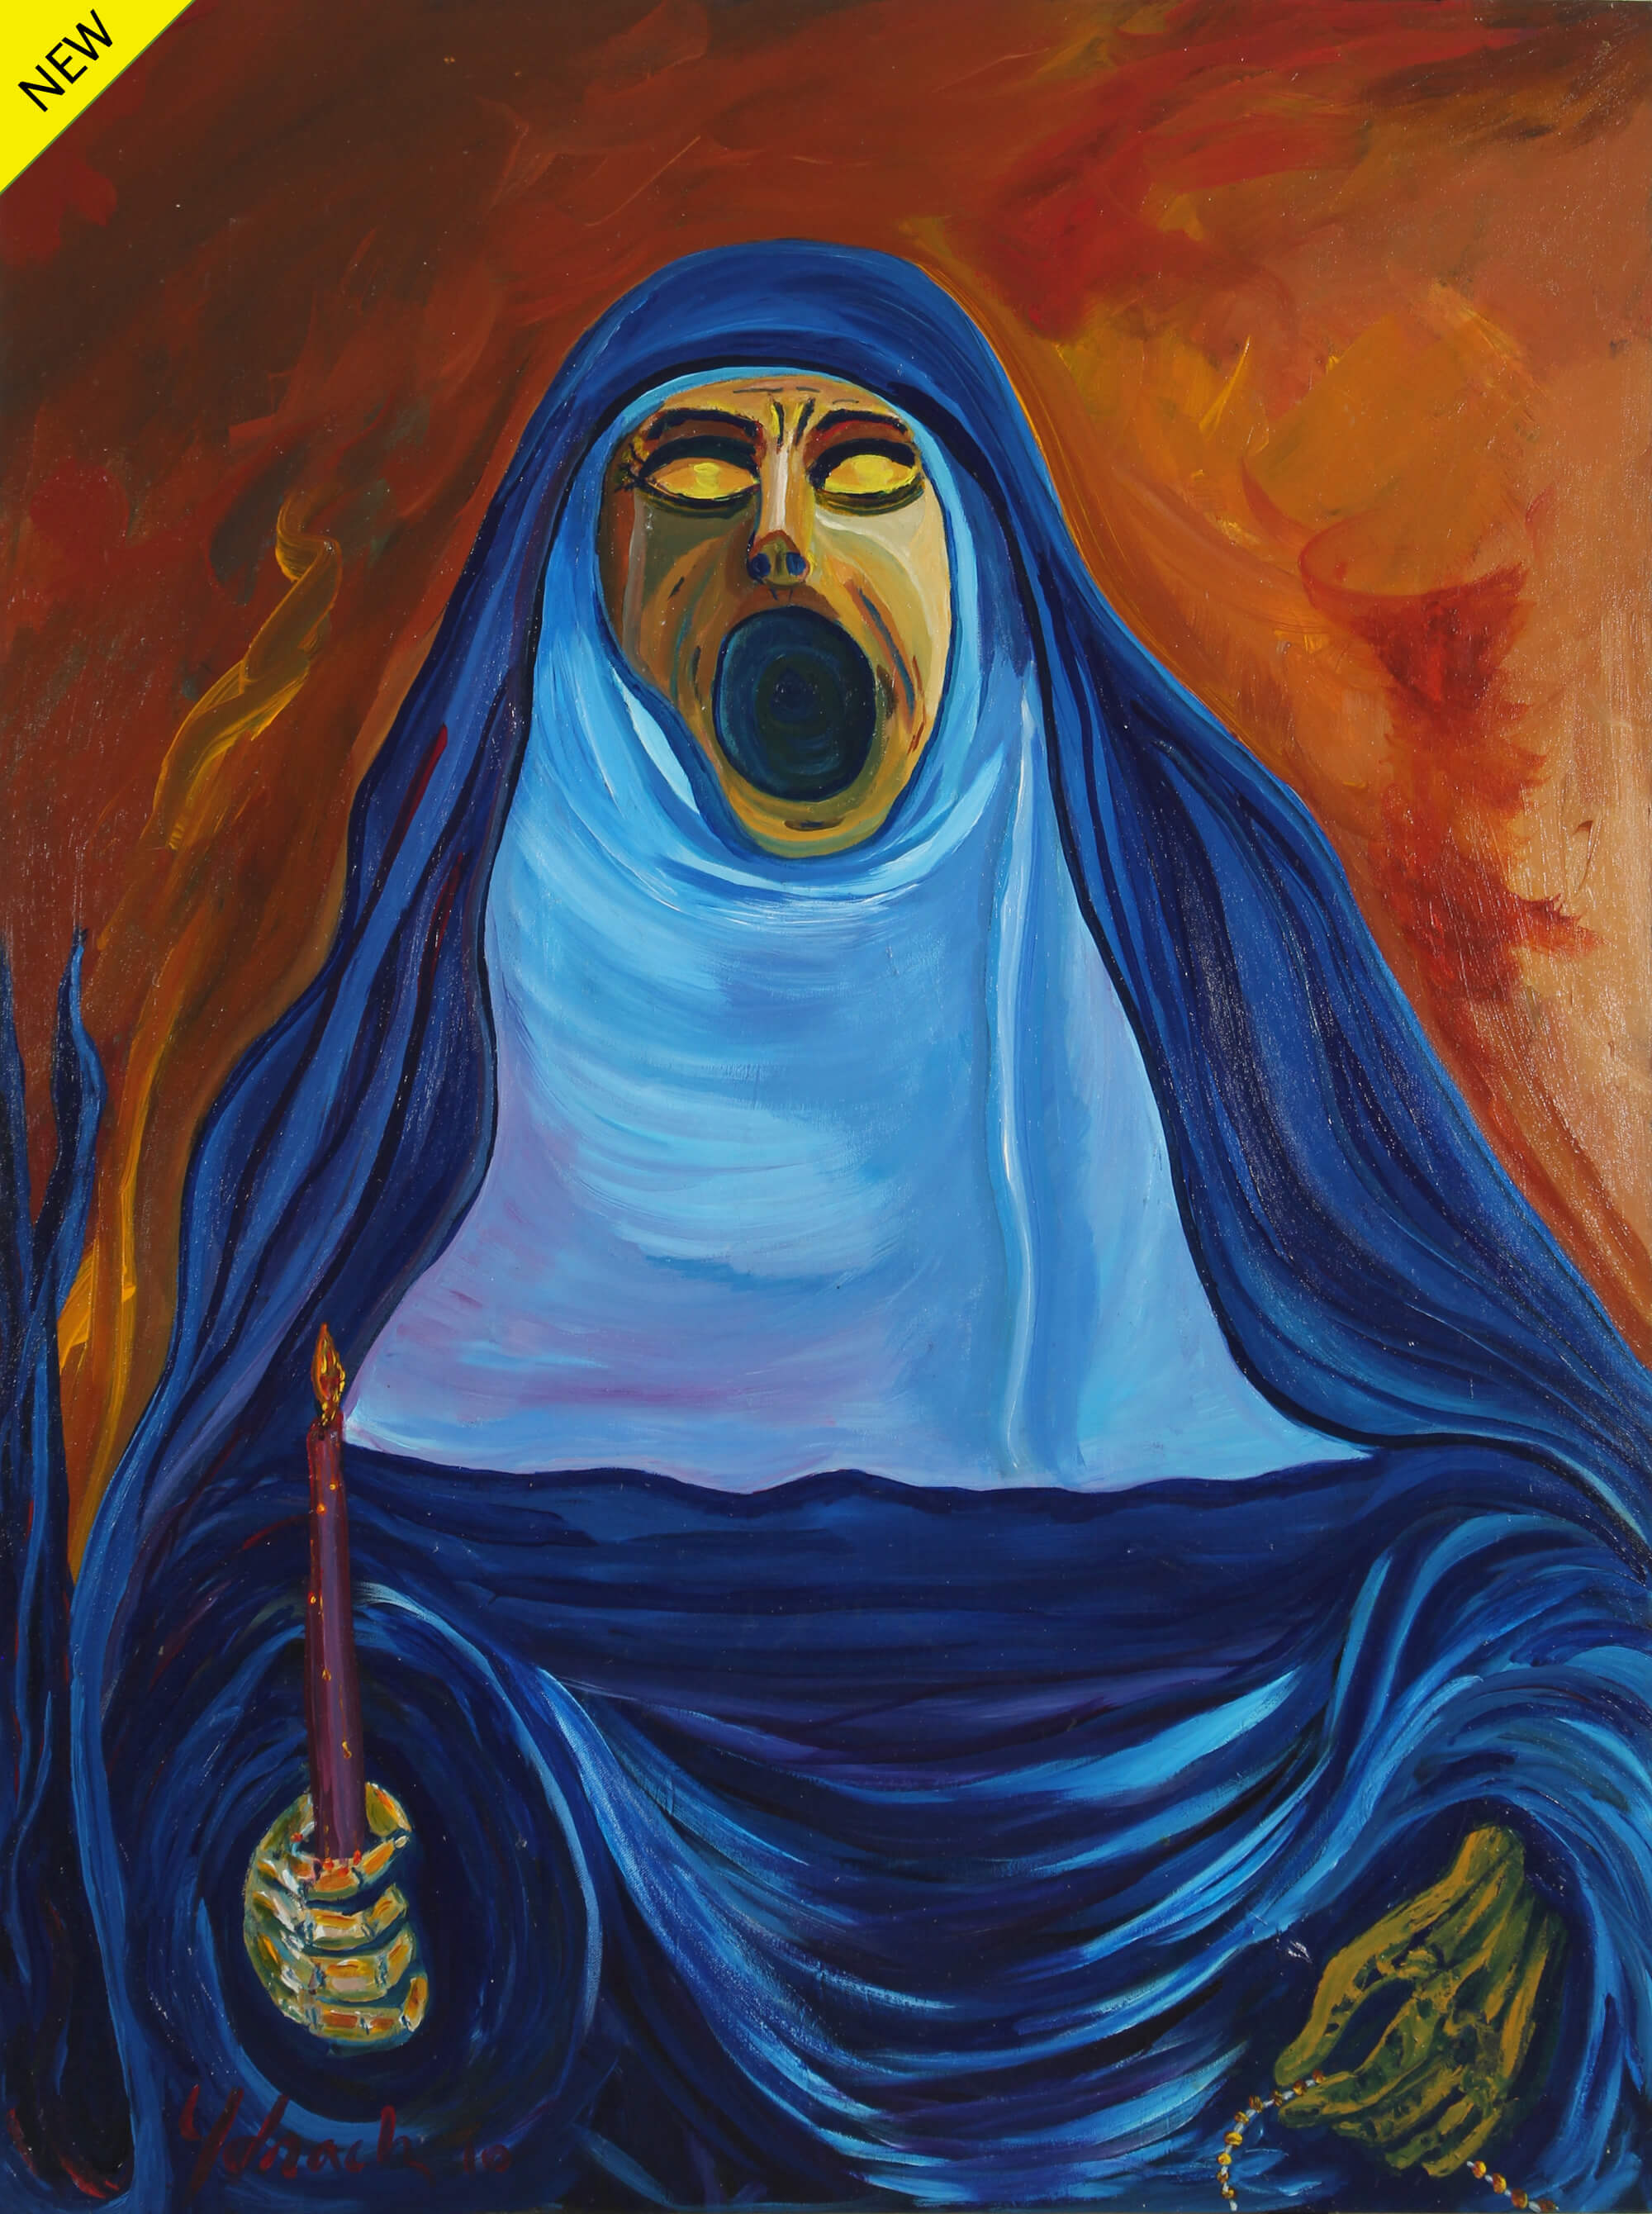 Acrylic painting of a nun on a blue chador type habit holding a purple candle on her right hand and her mouth wide open in a scream like Edvard Munch's The Scream by Vicente Ydrach.